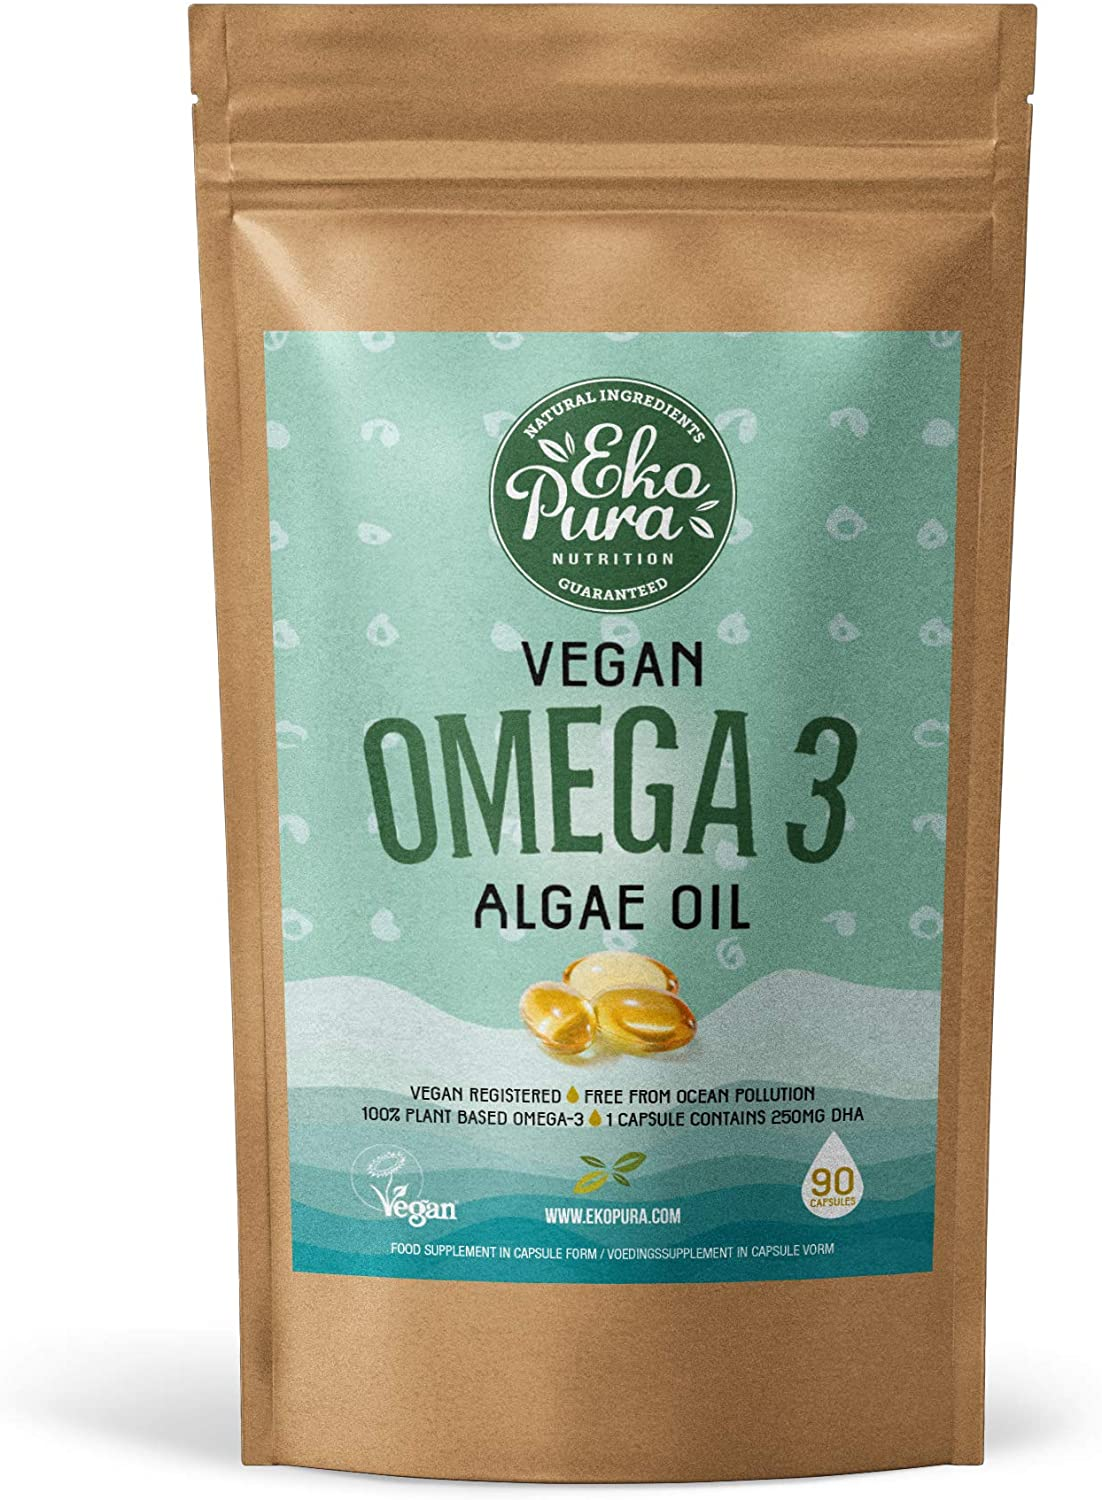 Vegan Omega 3 - Algae Oil, 90 Capsules (250mg DHA/Capsule), 3 Month Supply - Sustainable Alternative to Fish Oil